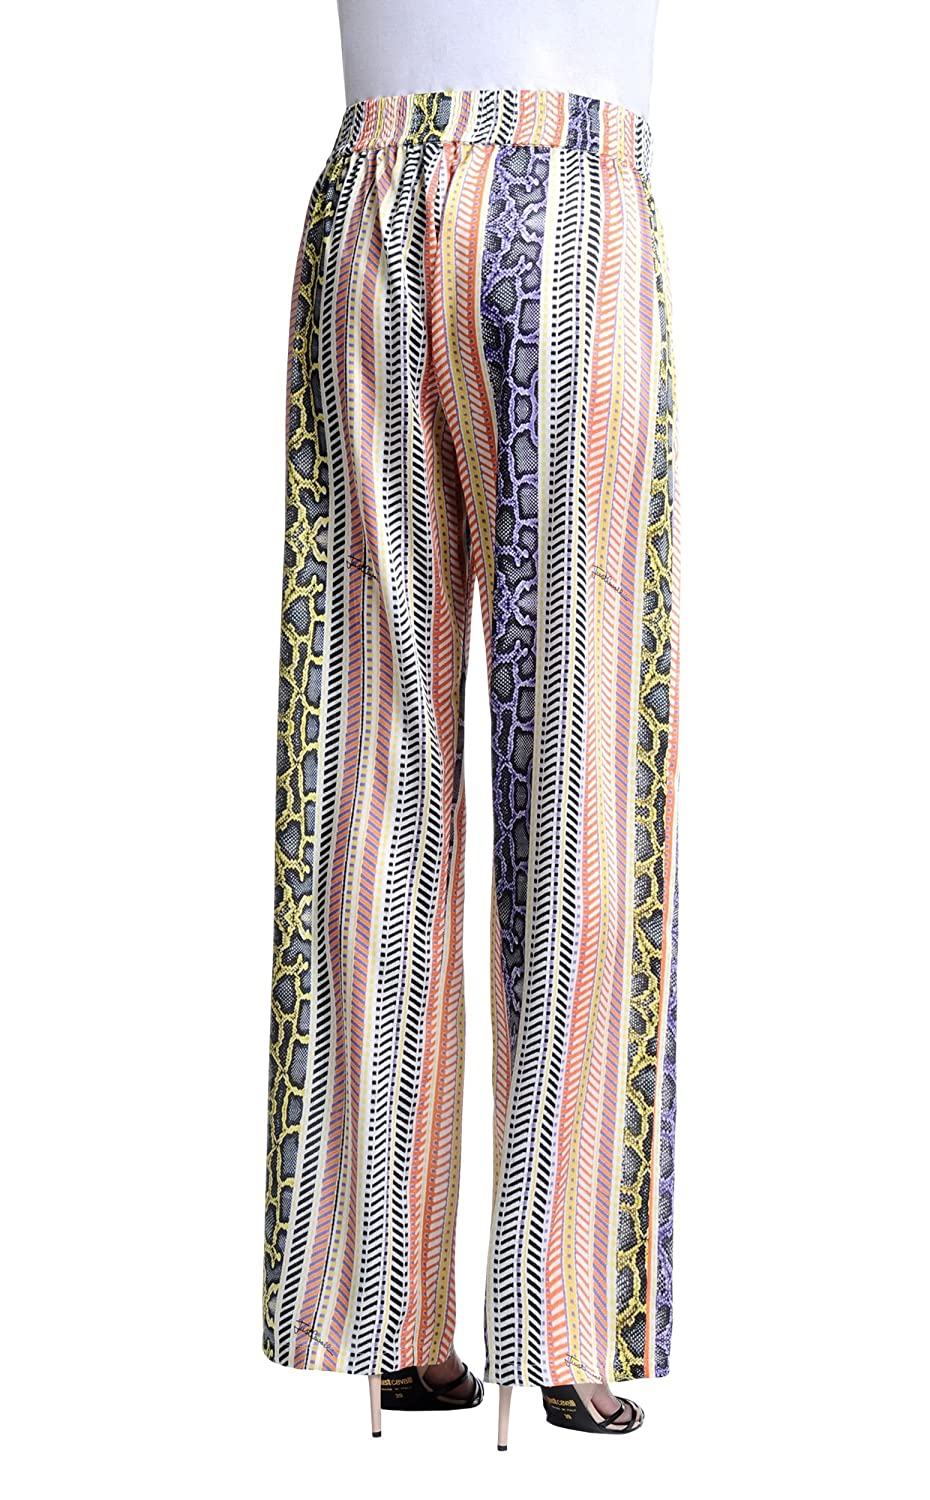 Just Cavalli Women's Multi-Color Striped Casual Pants US 4 IT 40